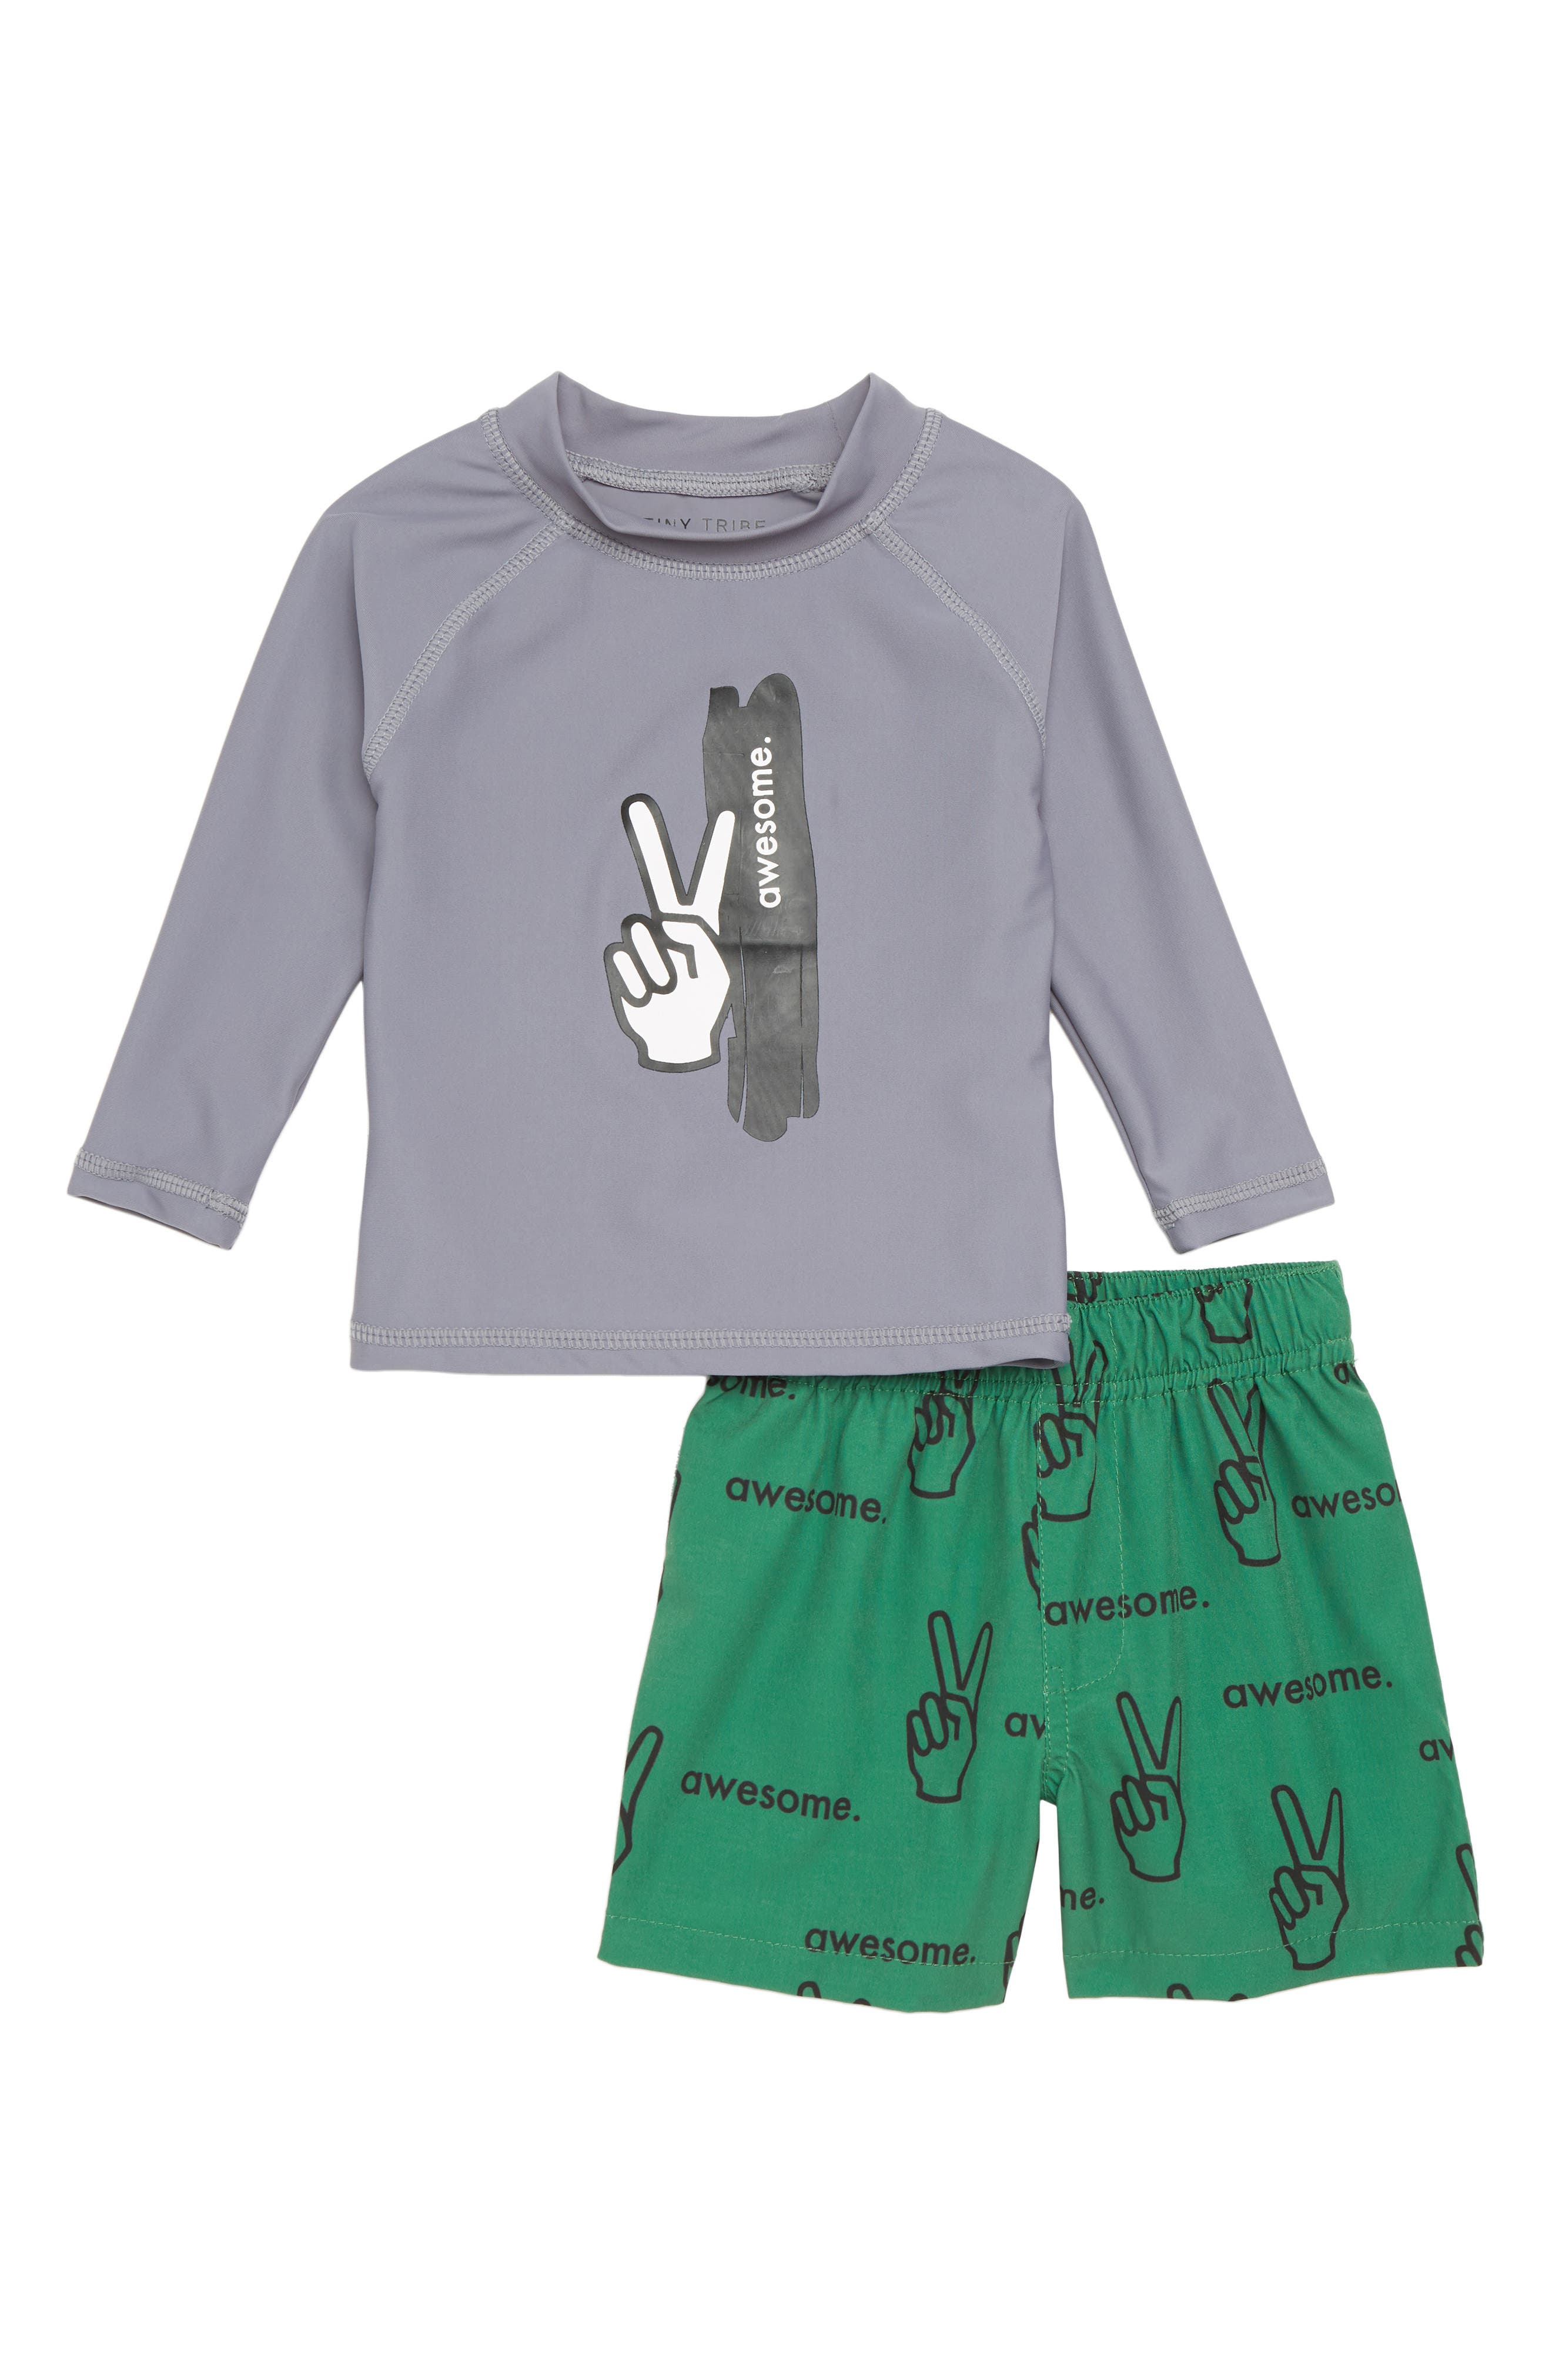 Boys are Awesome Two-Piece Rashguard Swimsuit,                             Main thumbnail 1, color,                             039